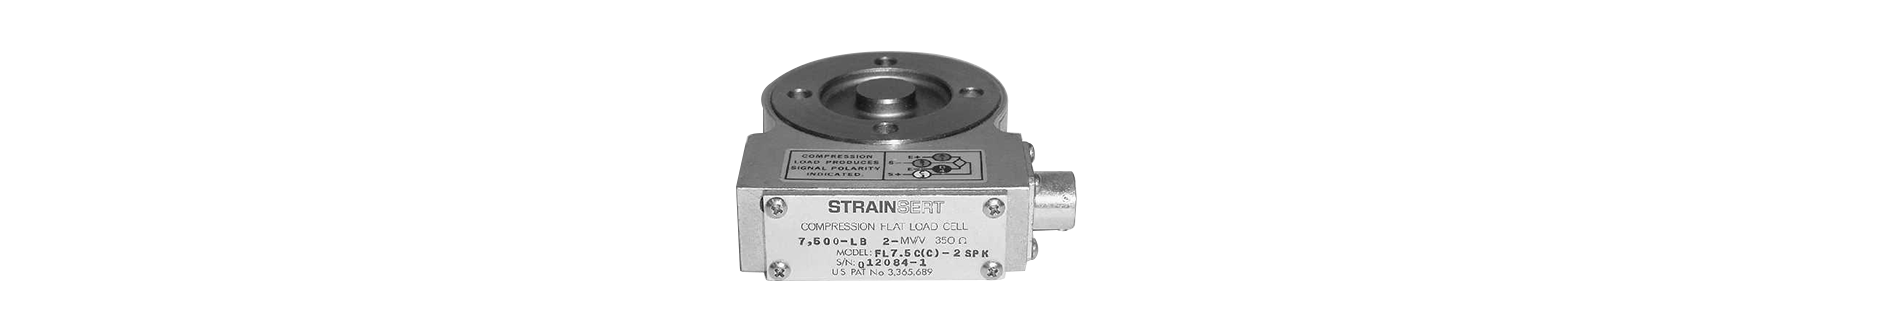 Pancake Load Cell Suppliers Pancake Load Cell Manufacturer